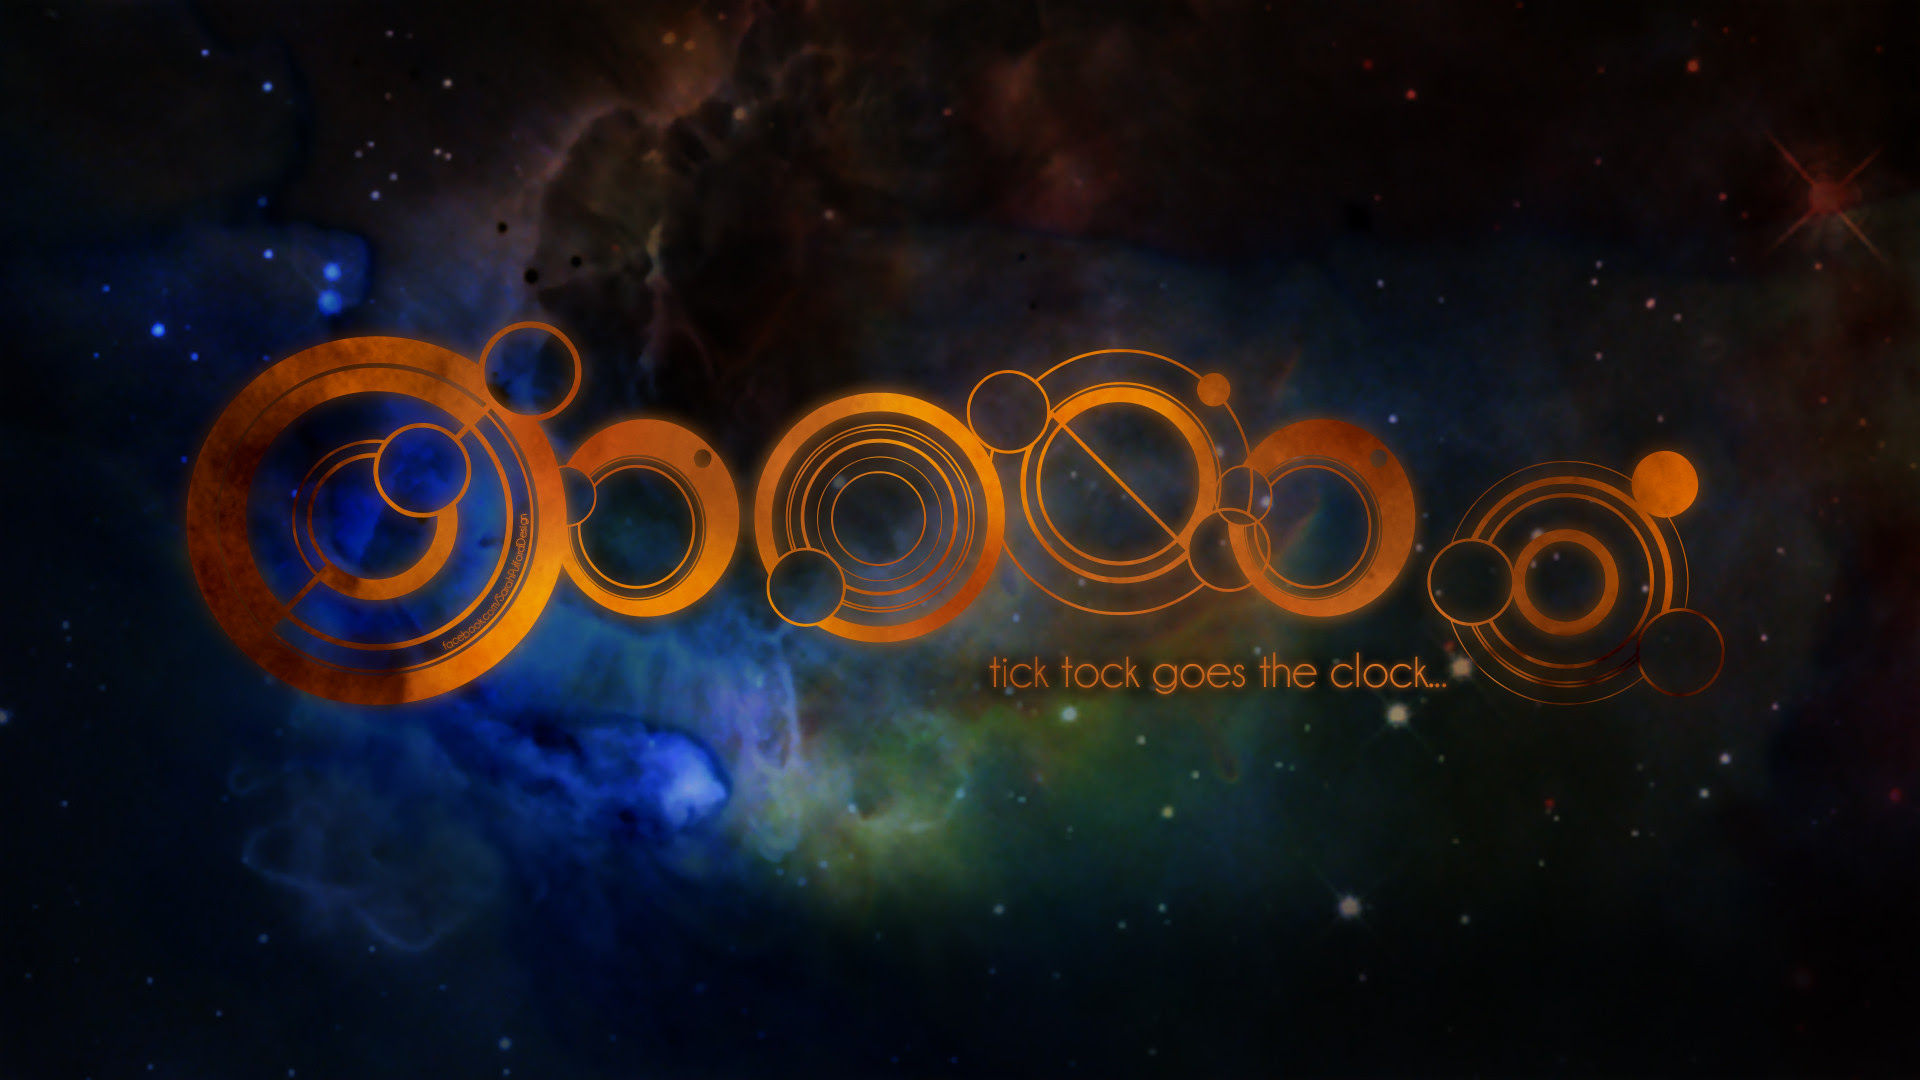 Doctor Who HD Wallpapers for desktop download